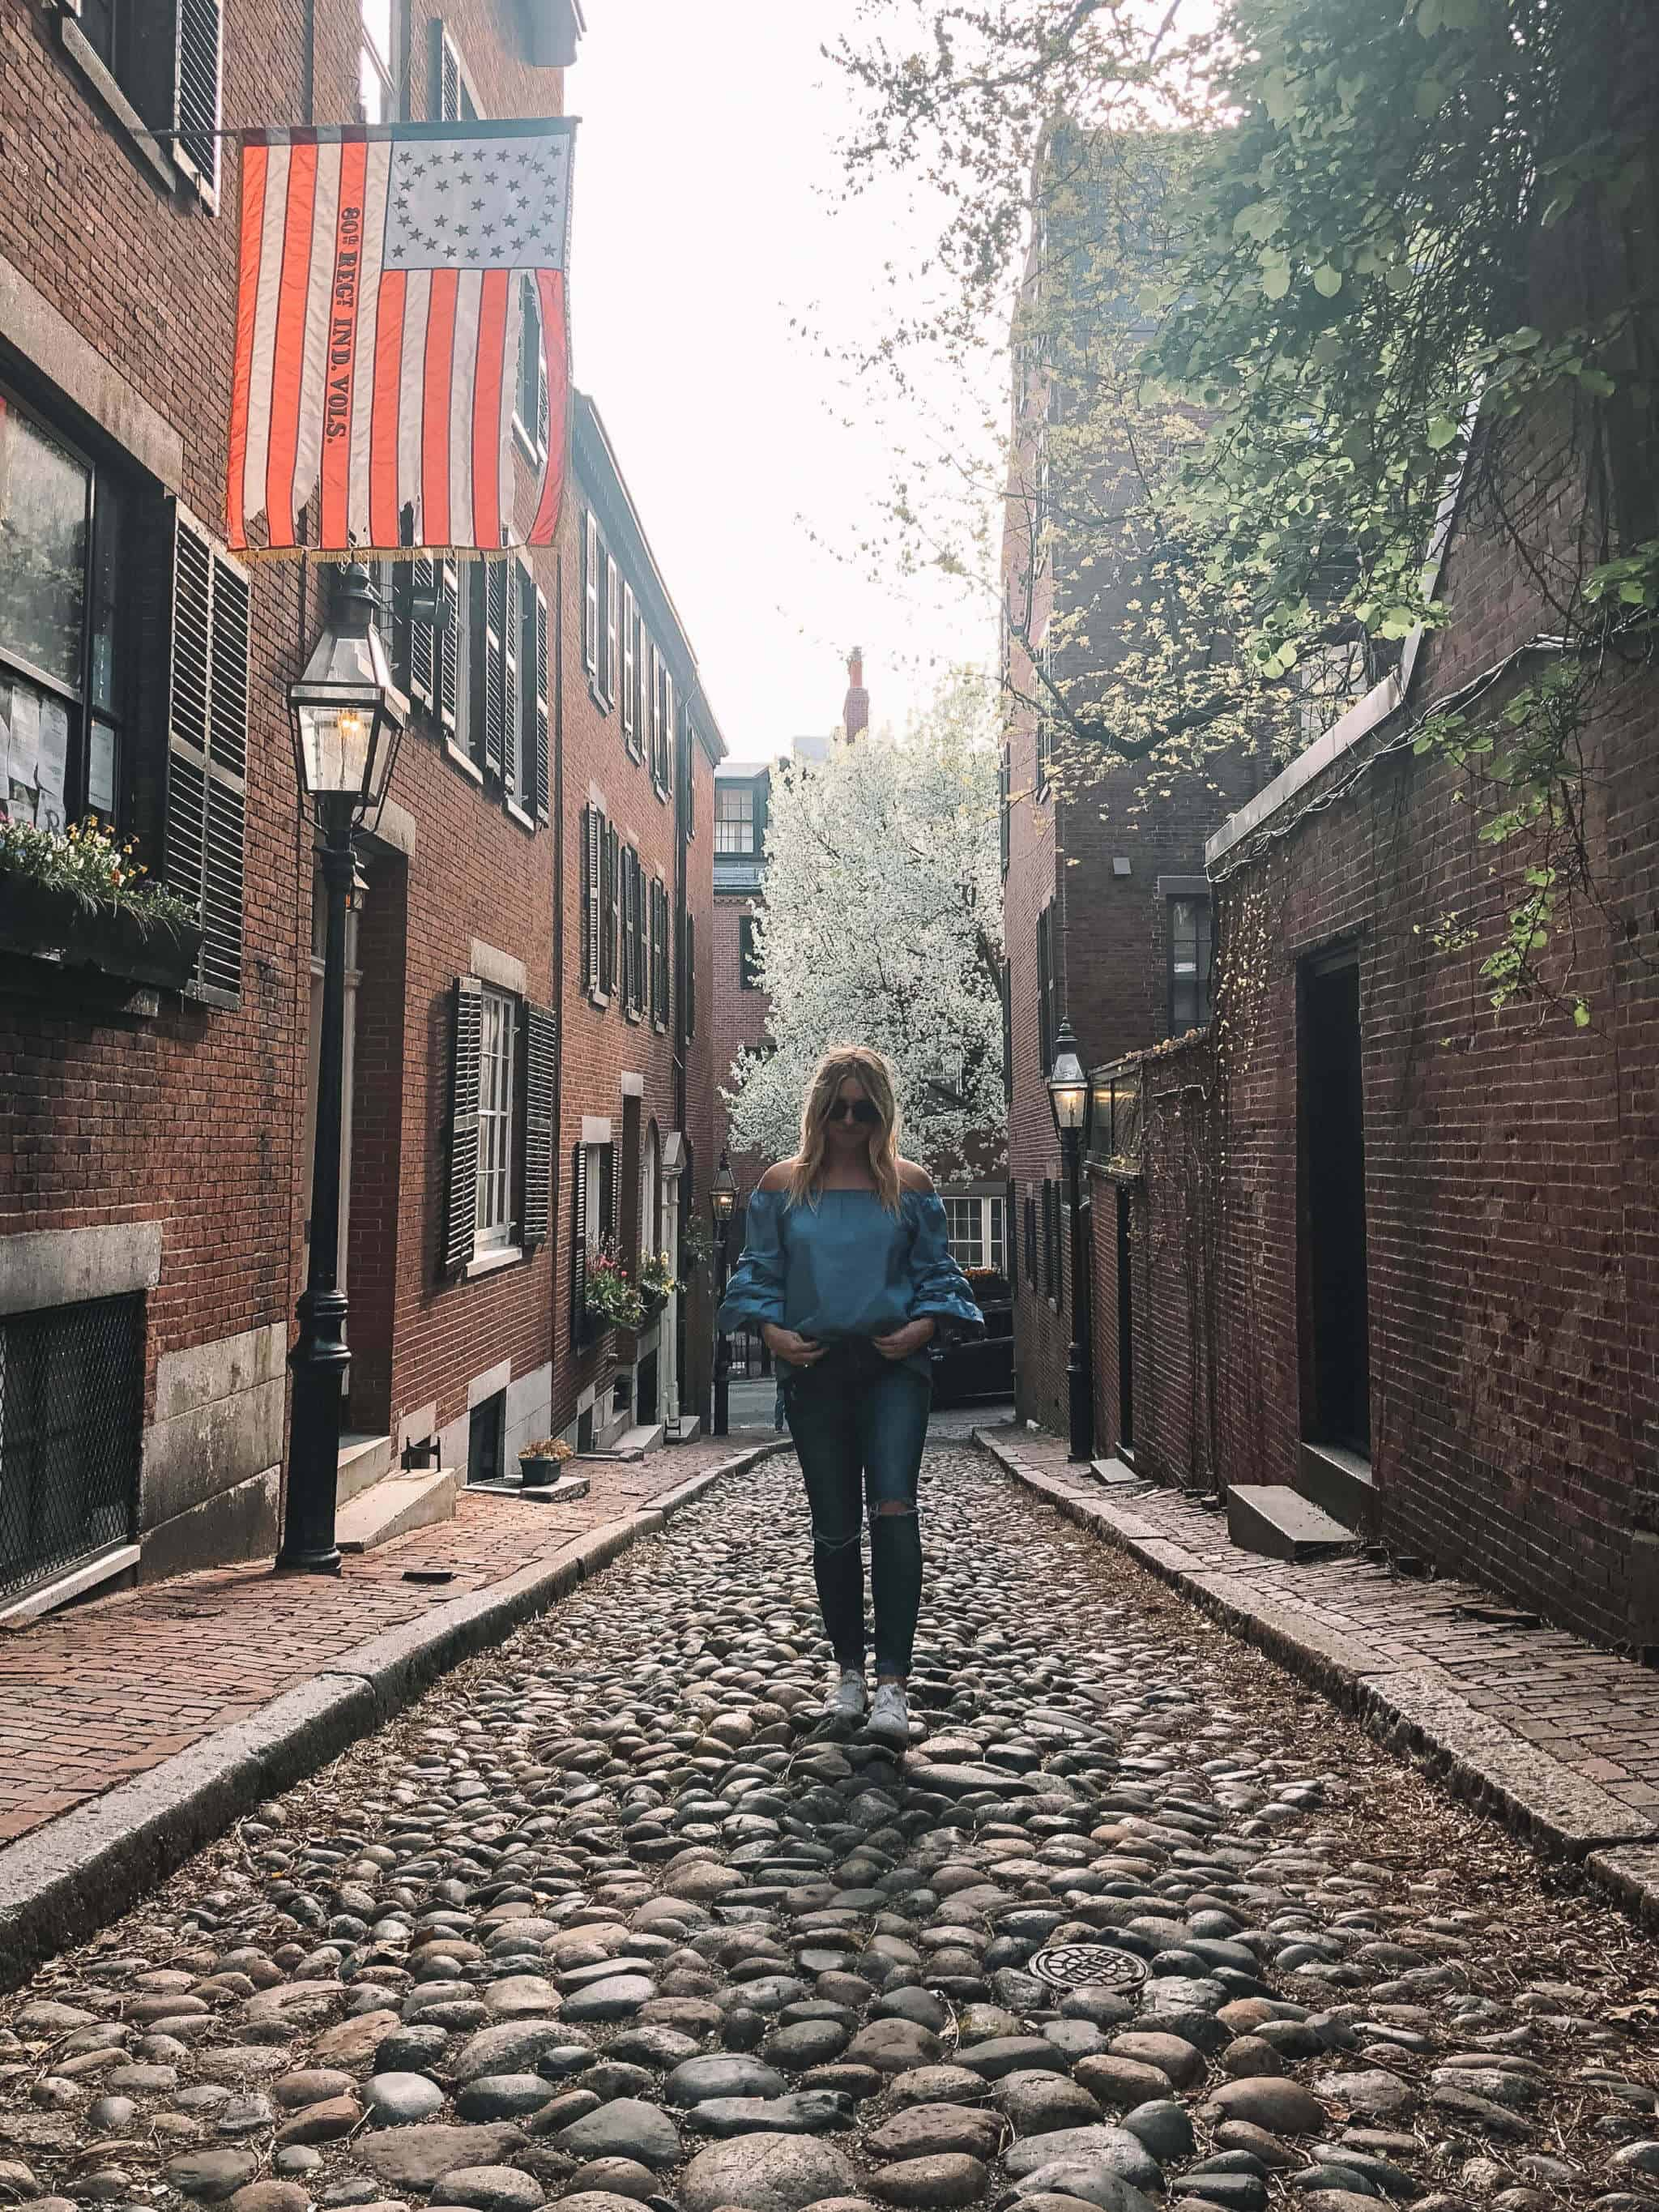 Top 10 Things to Do in Boston - Acorn Street